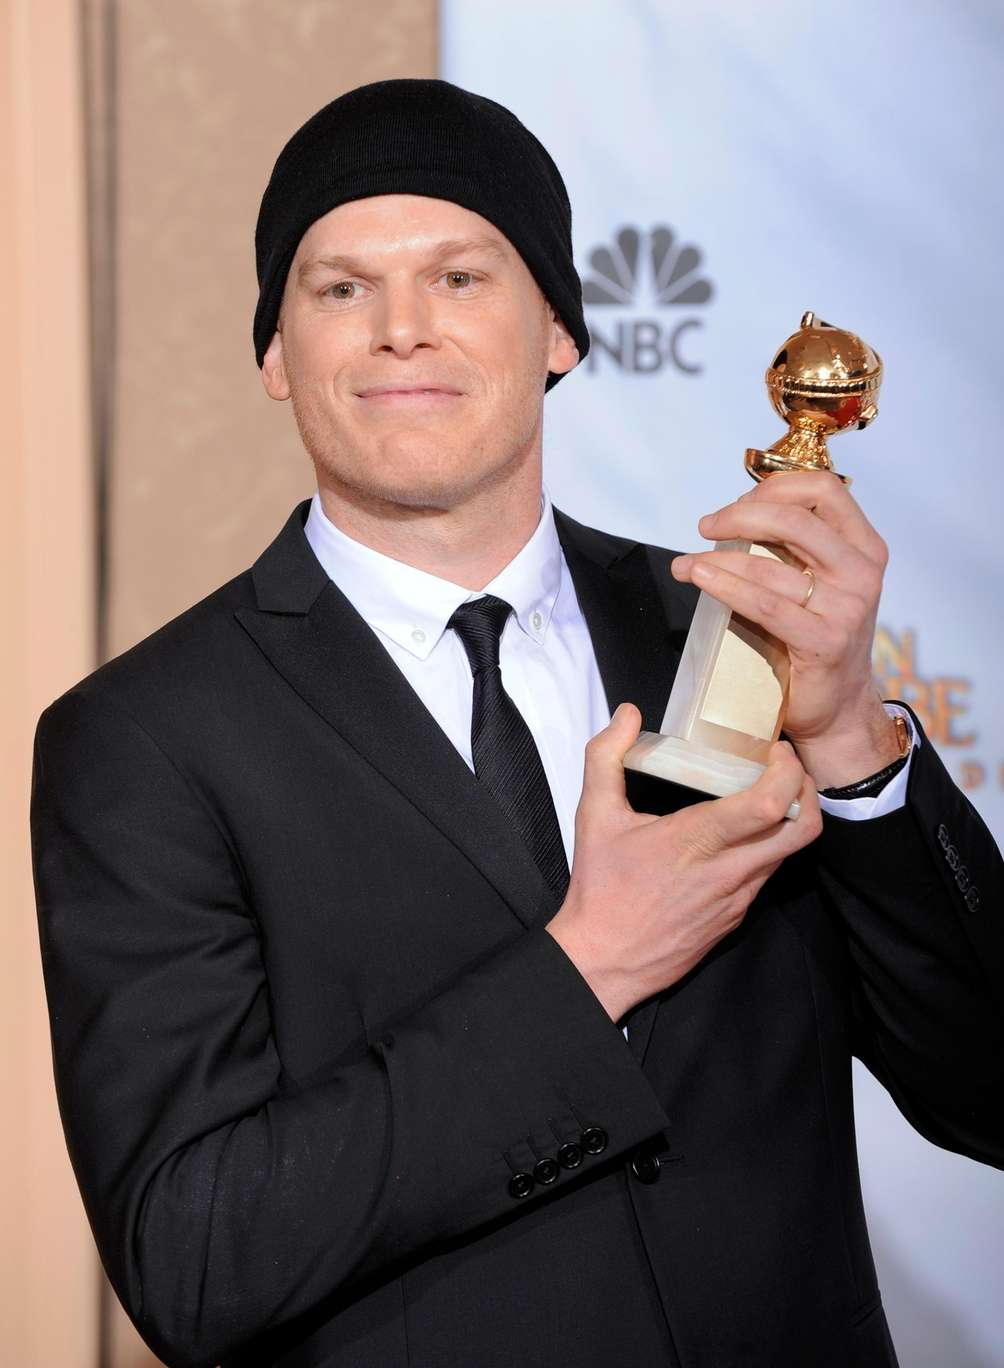 Michael C. Hall--most recognized from his role as